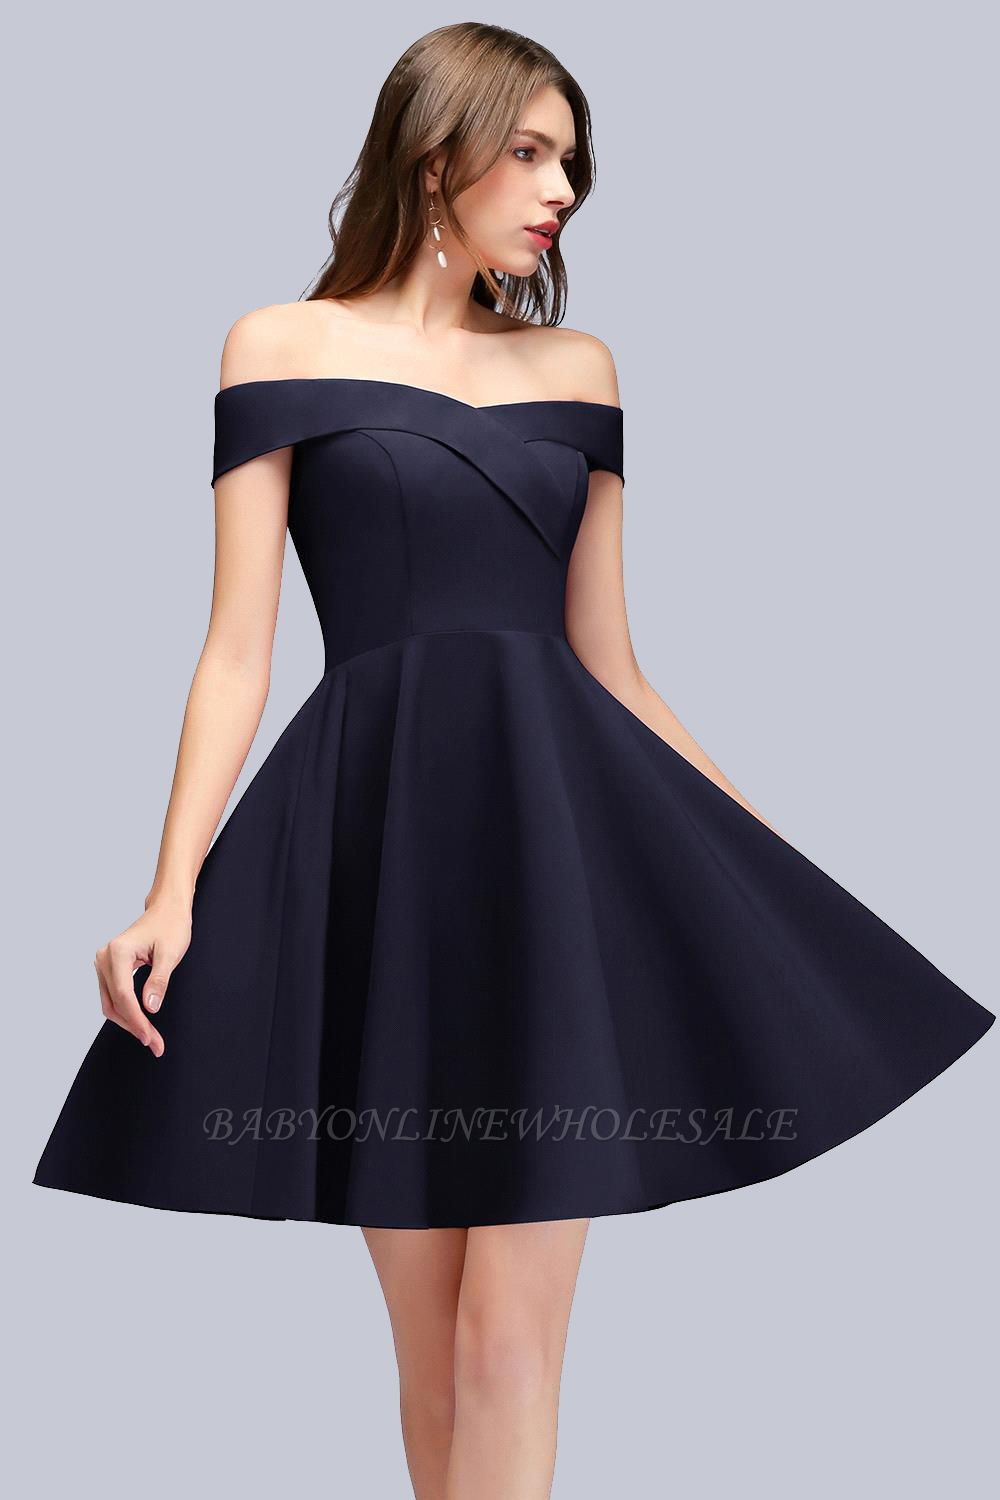 Simple Short Dark Navy Off the Shoulder Bridesmaid Dresses